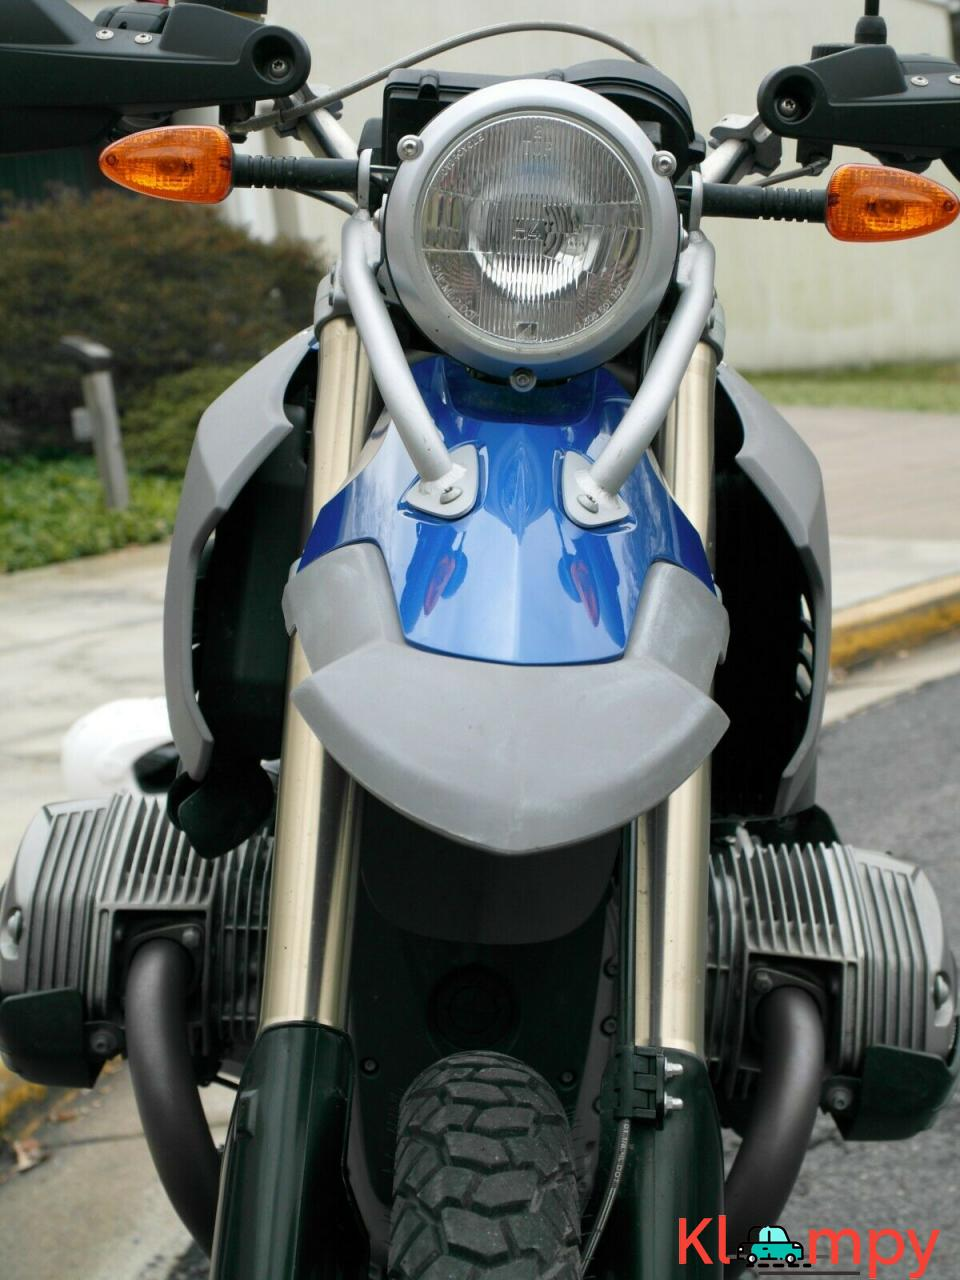 2006 BMW Enduro Blue - 8/18